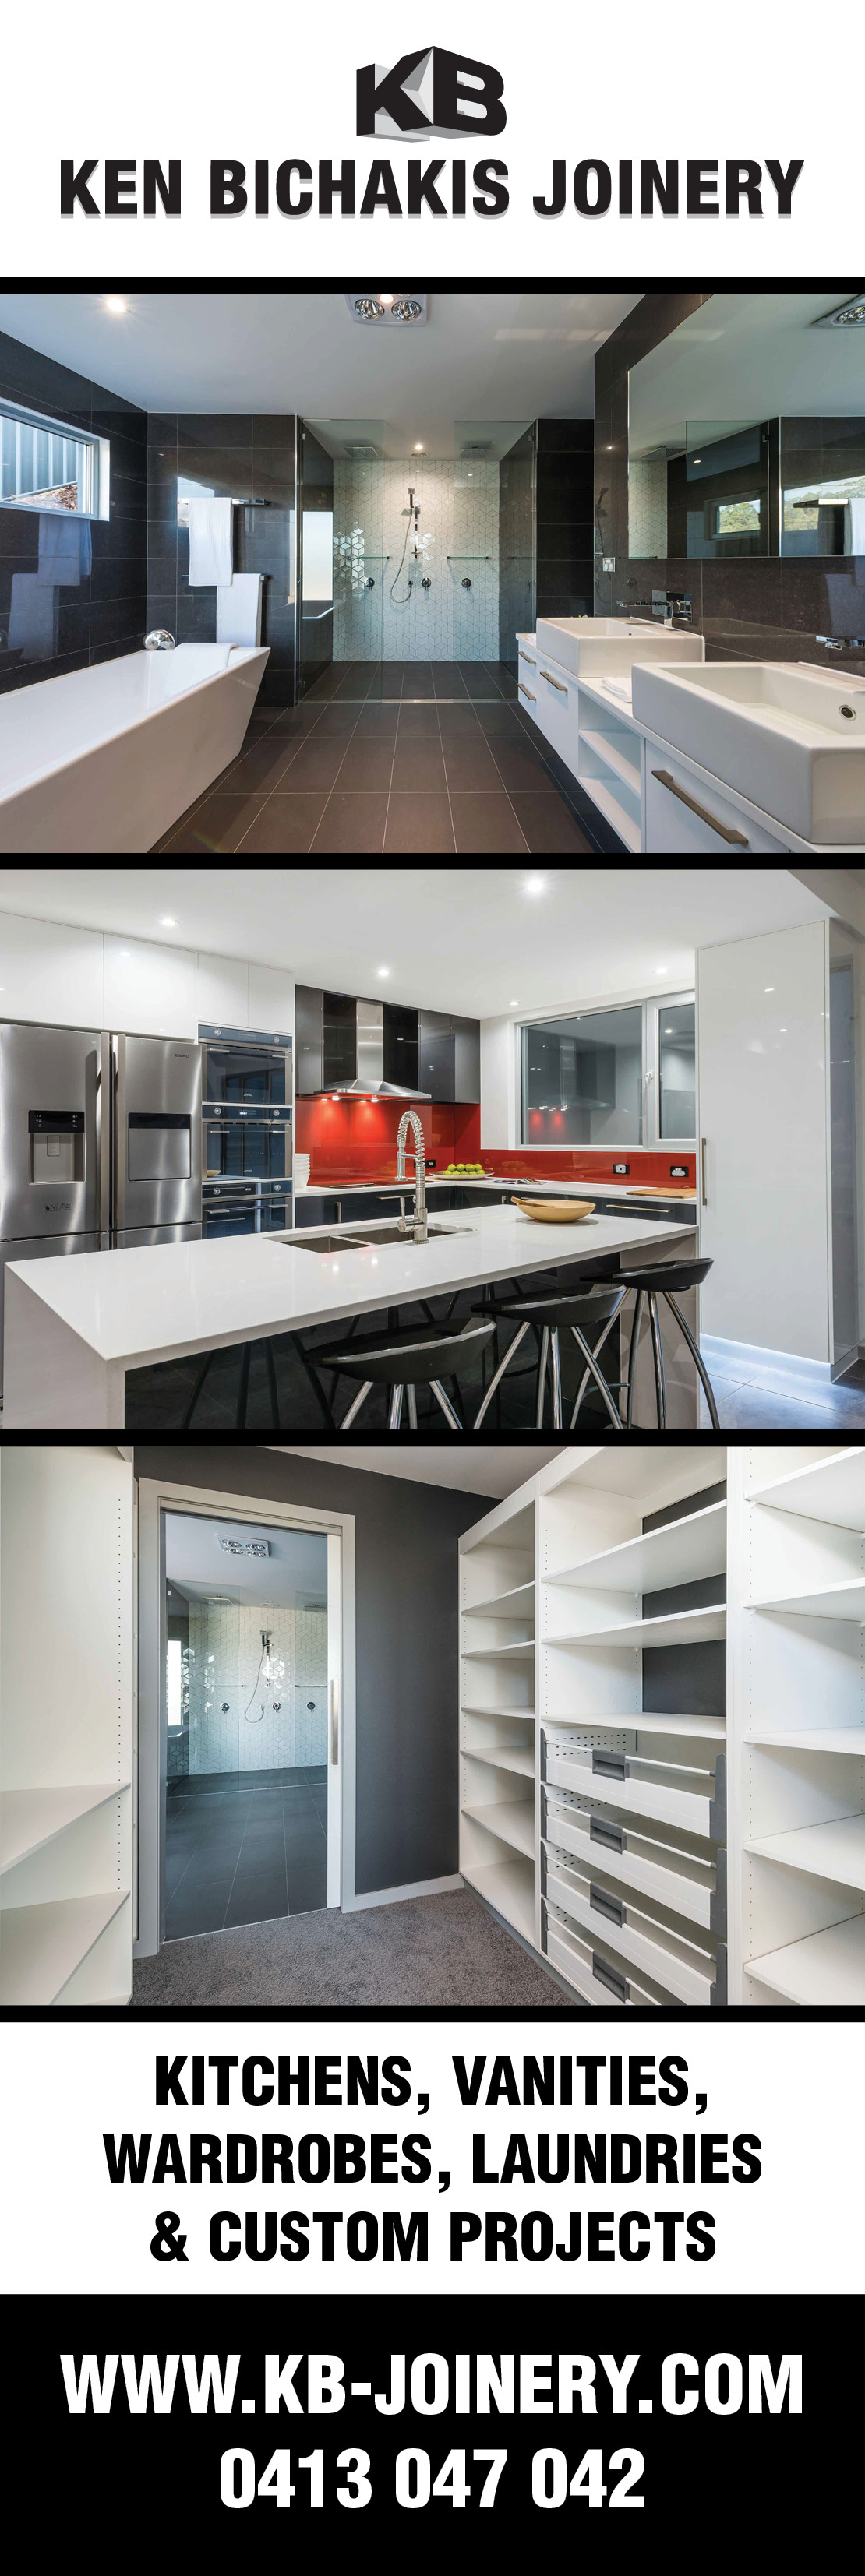 Kitchen Design Centre Hobart Ken Bichakis Joinery Pty Ltd Kitchen Renovations Designs Hobart